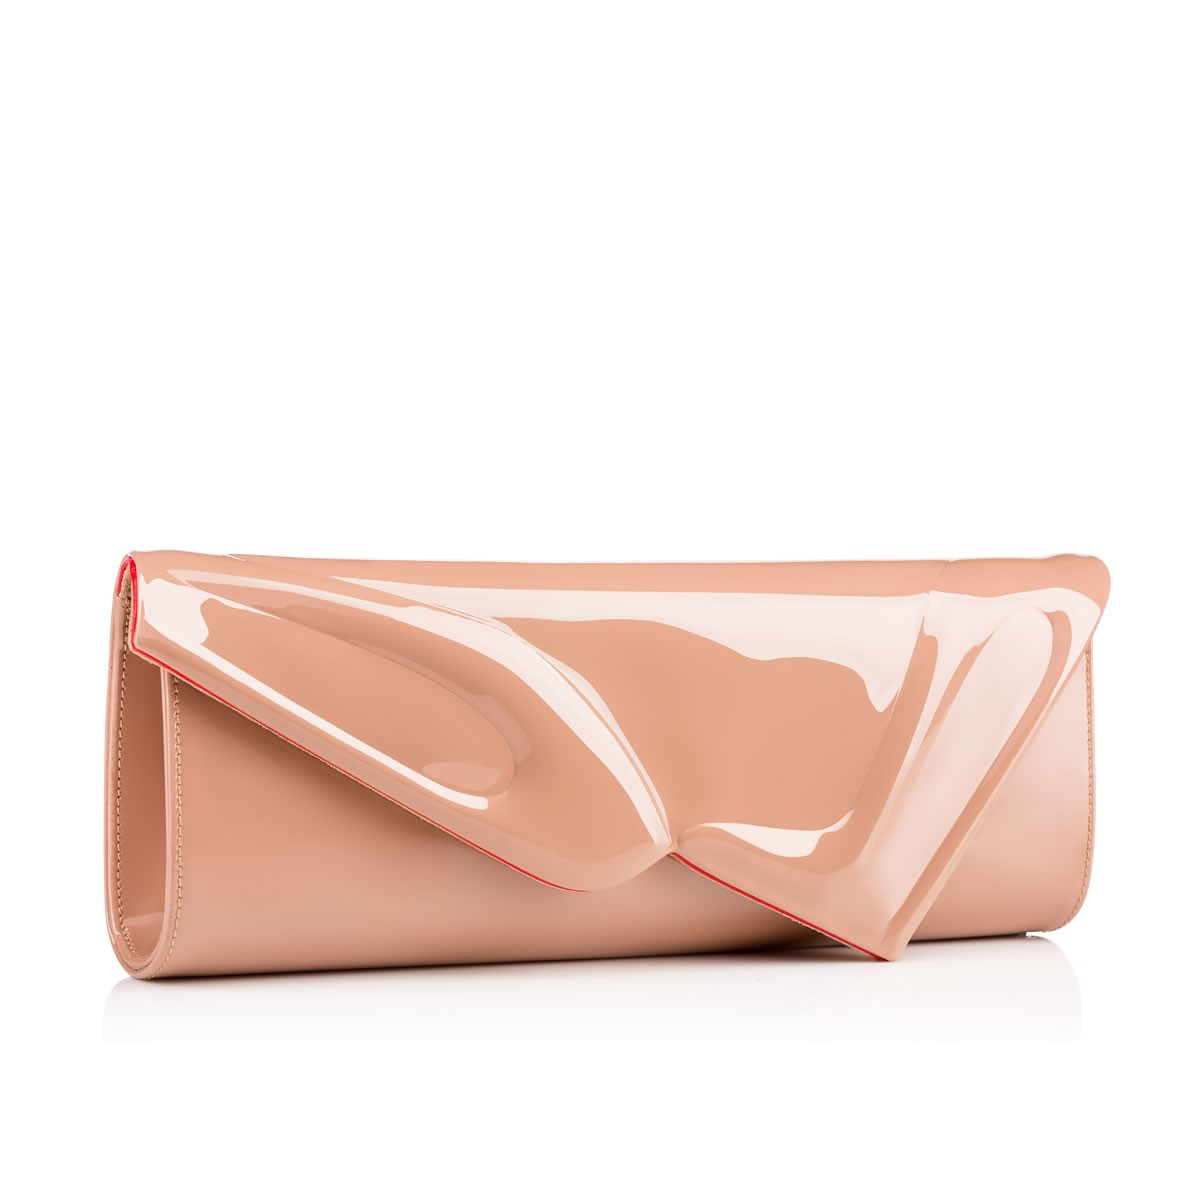 Women Bags - So Kate Clutch - Christian Louboutin